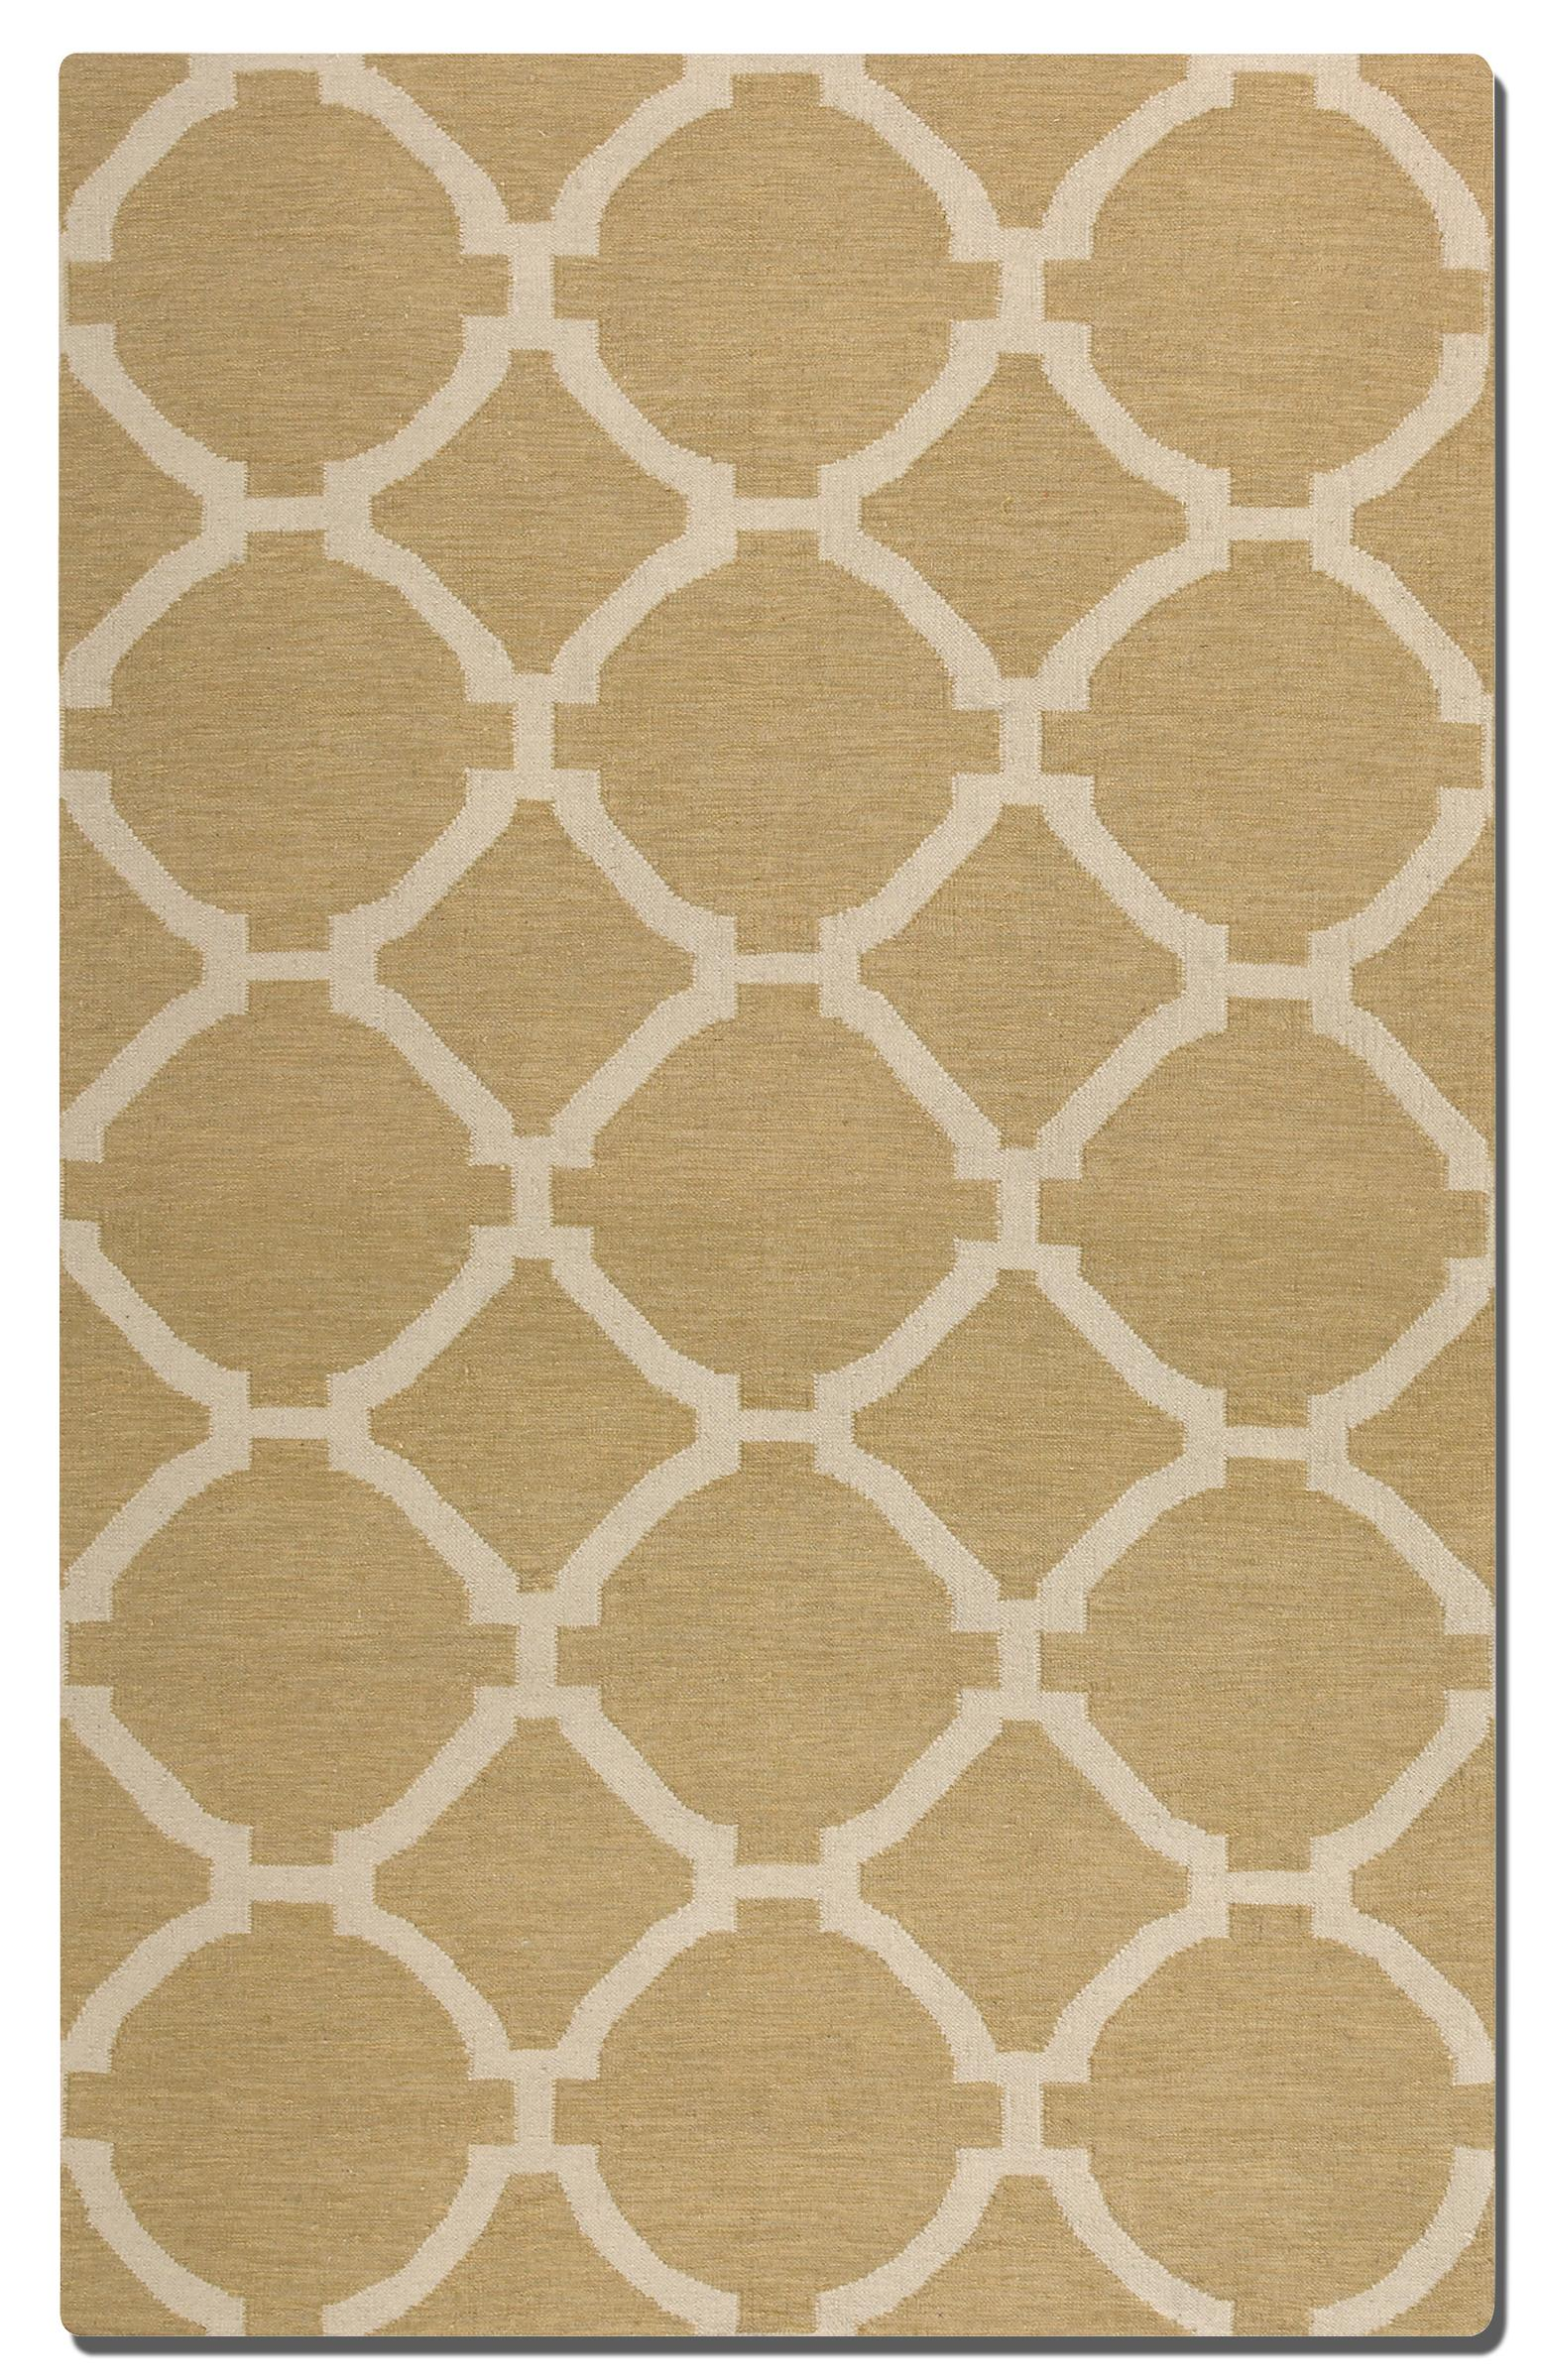 Uttermost Rugs Bermuda 8 X 10  - Item Number: 71019-8